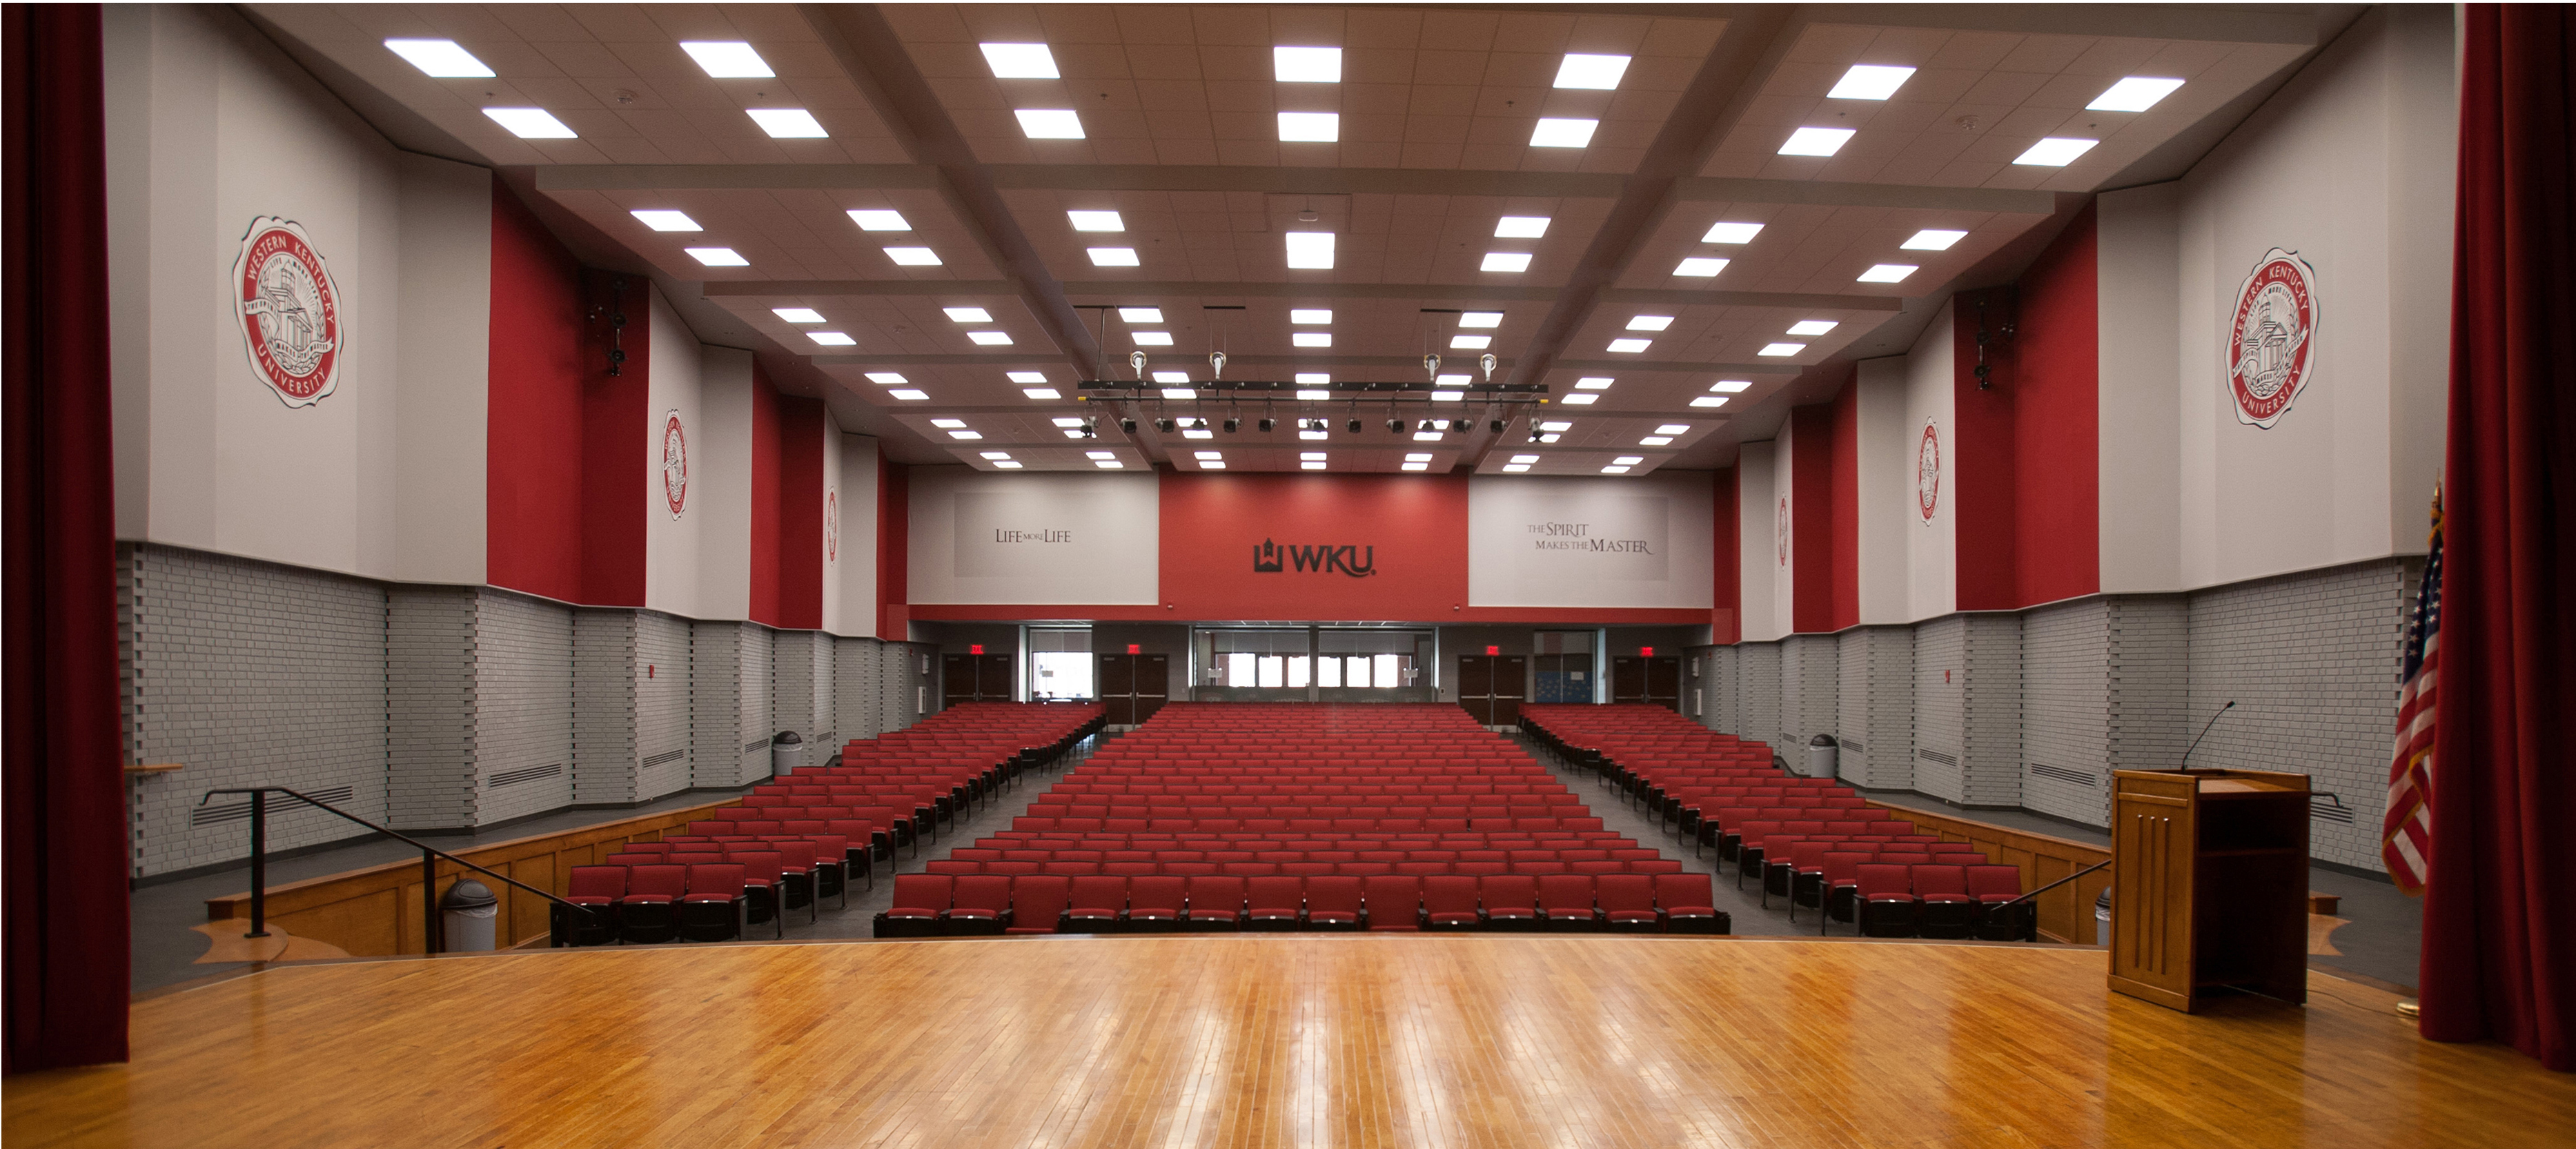 Downing Student Union Auditorium